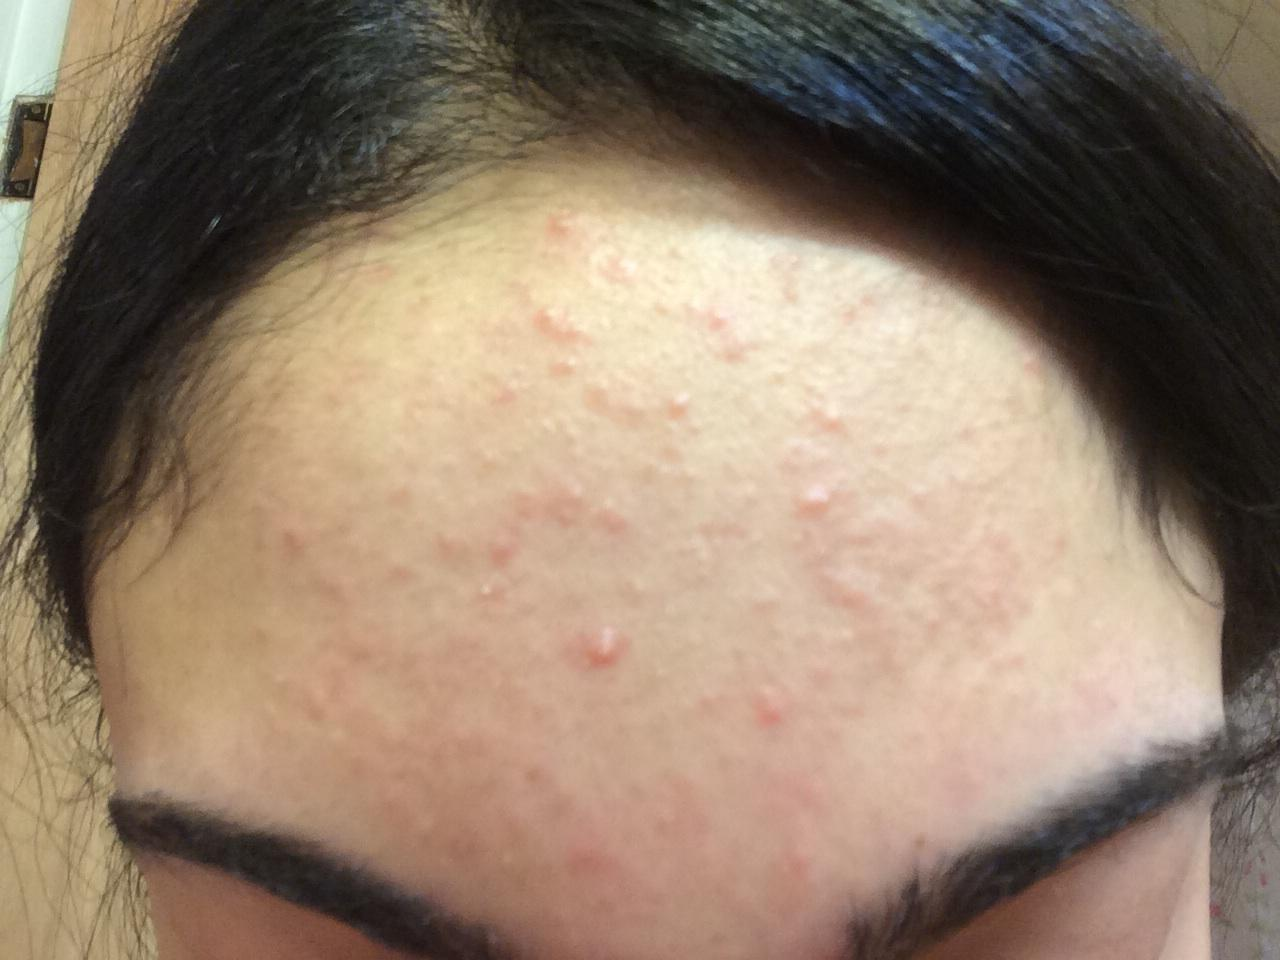 What Are These Small Slightly Red Bumps On My Forehead